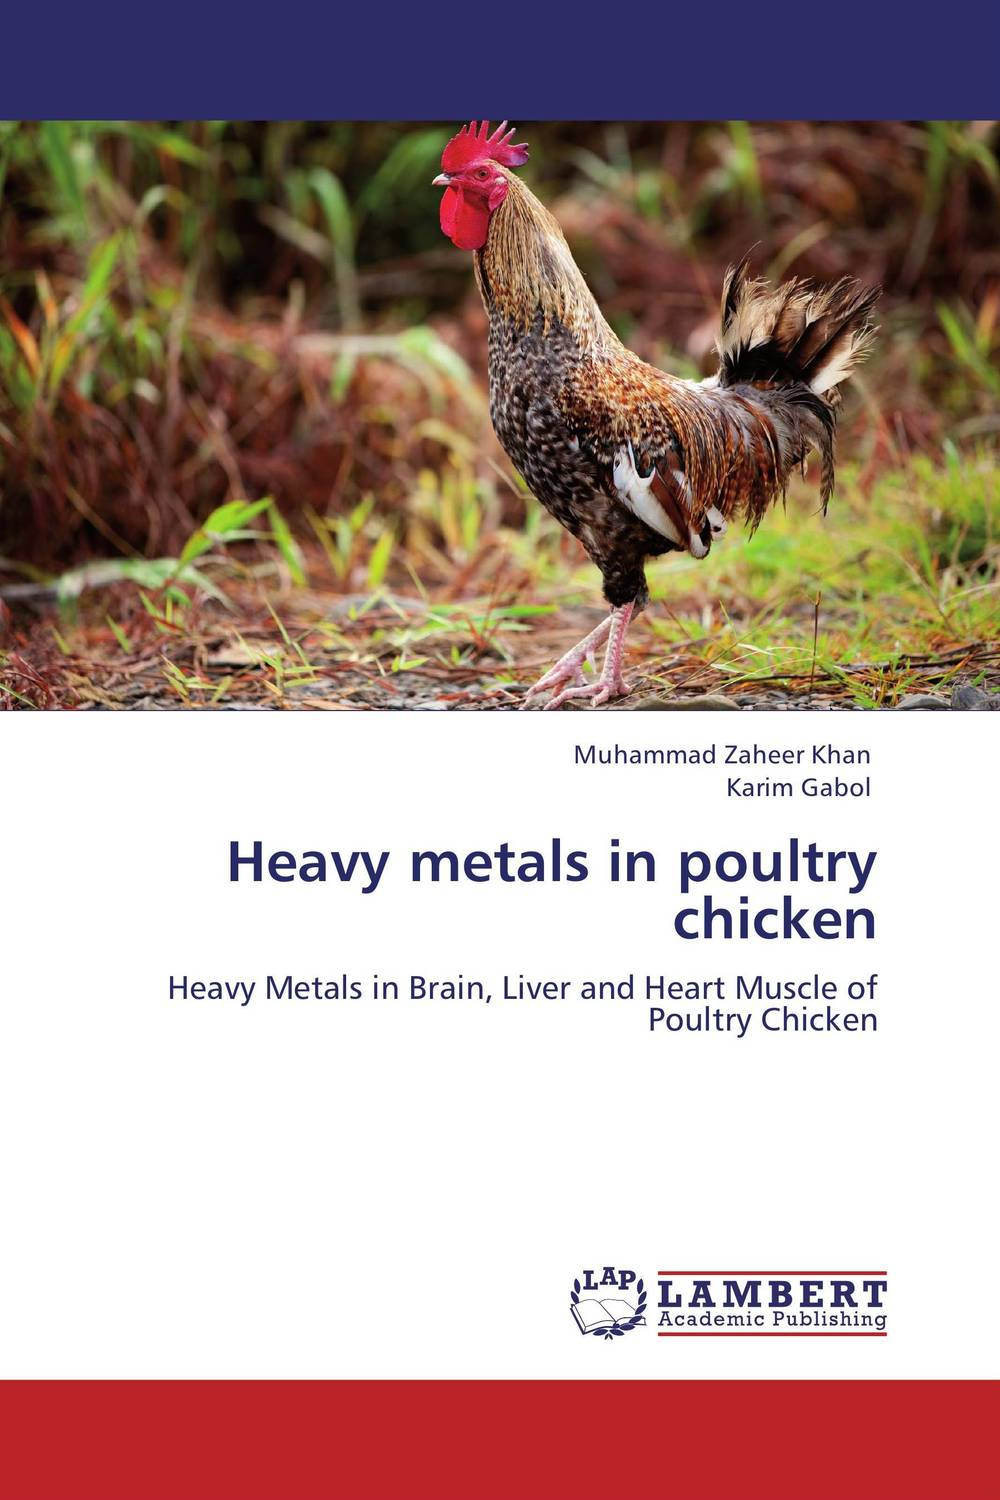 Heavy metals in poultry chicken